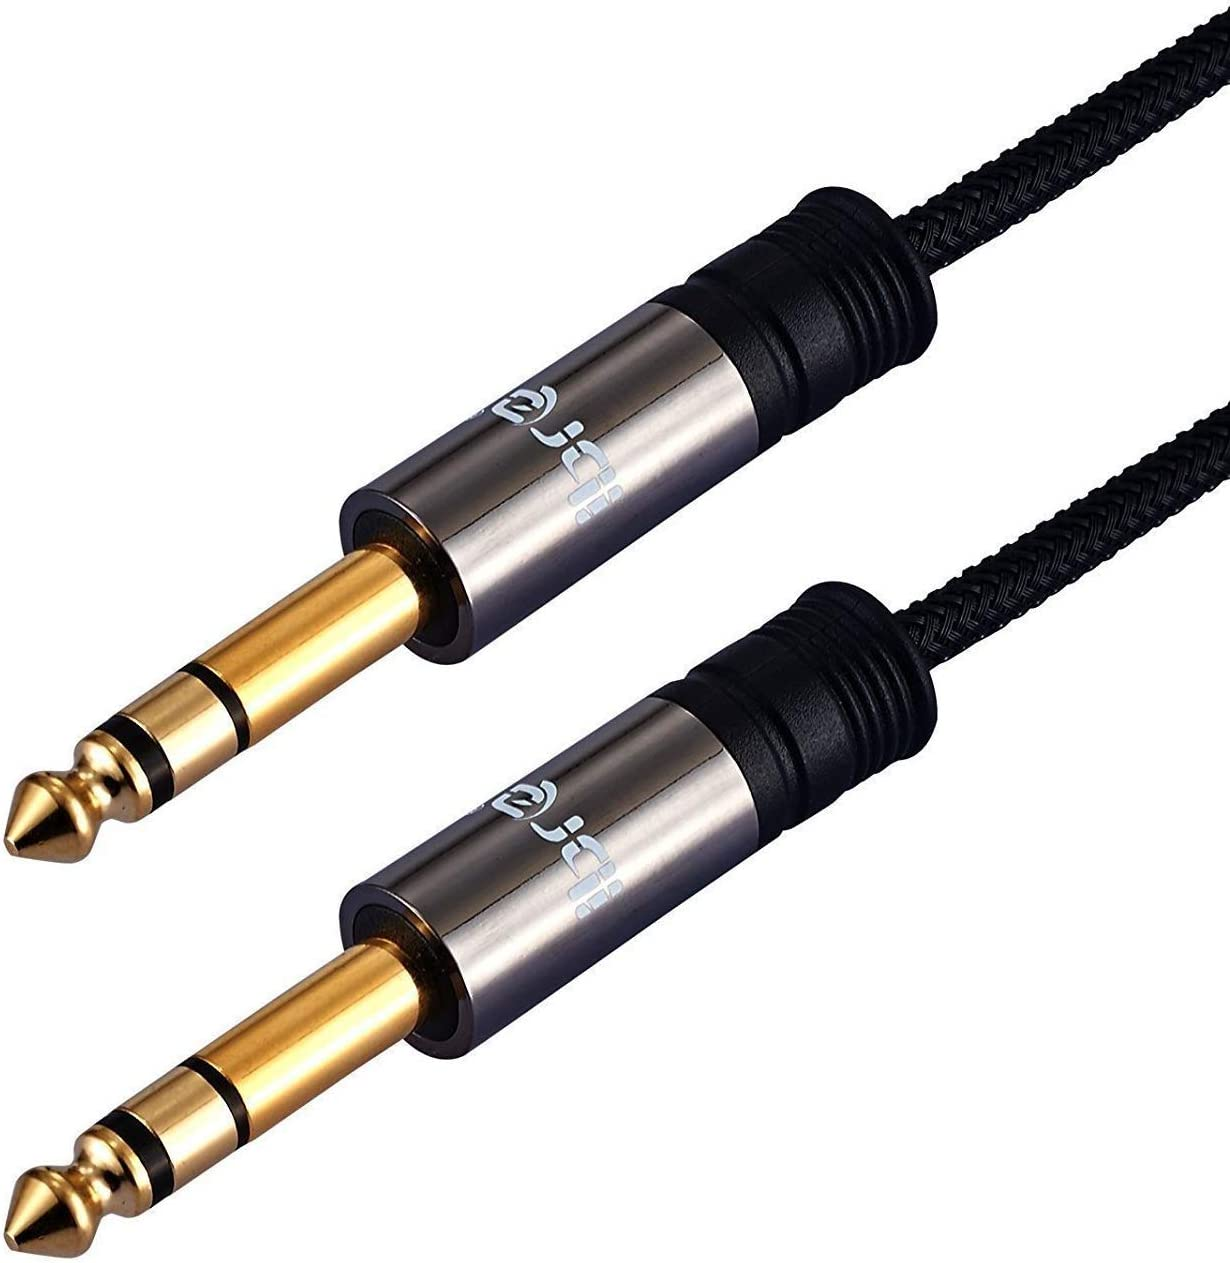 1//4 to 1//4 Speaker Cable 3M with Nylon Mesh,Stereo 6.3mm Guitar Bass Cable for Electric Guitar Effects Pedal Bass Drums Bass Keyboard Amplifier Guitarra etc IBRA 6.3mm Instrument Guitar cable 3M